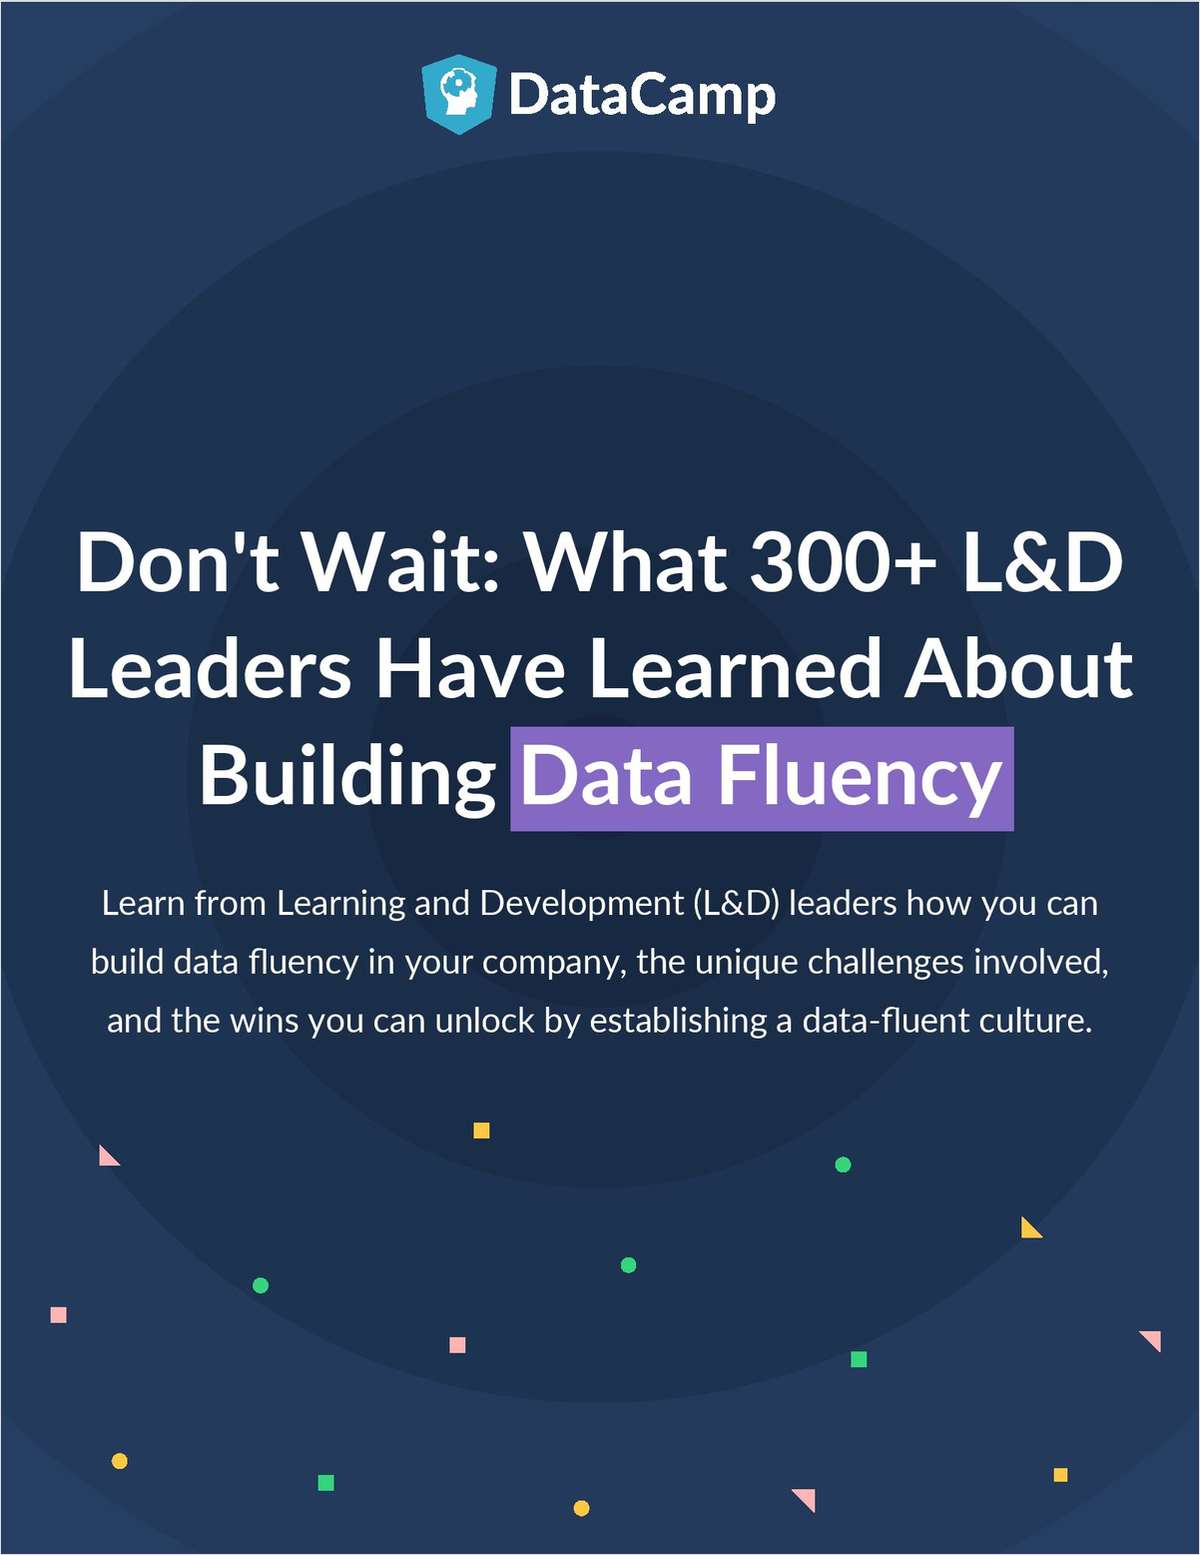 What 300+ L&D Leaders Have Learned About Building Data Fluency